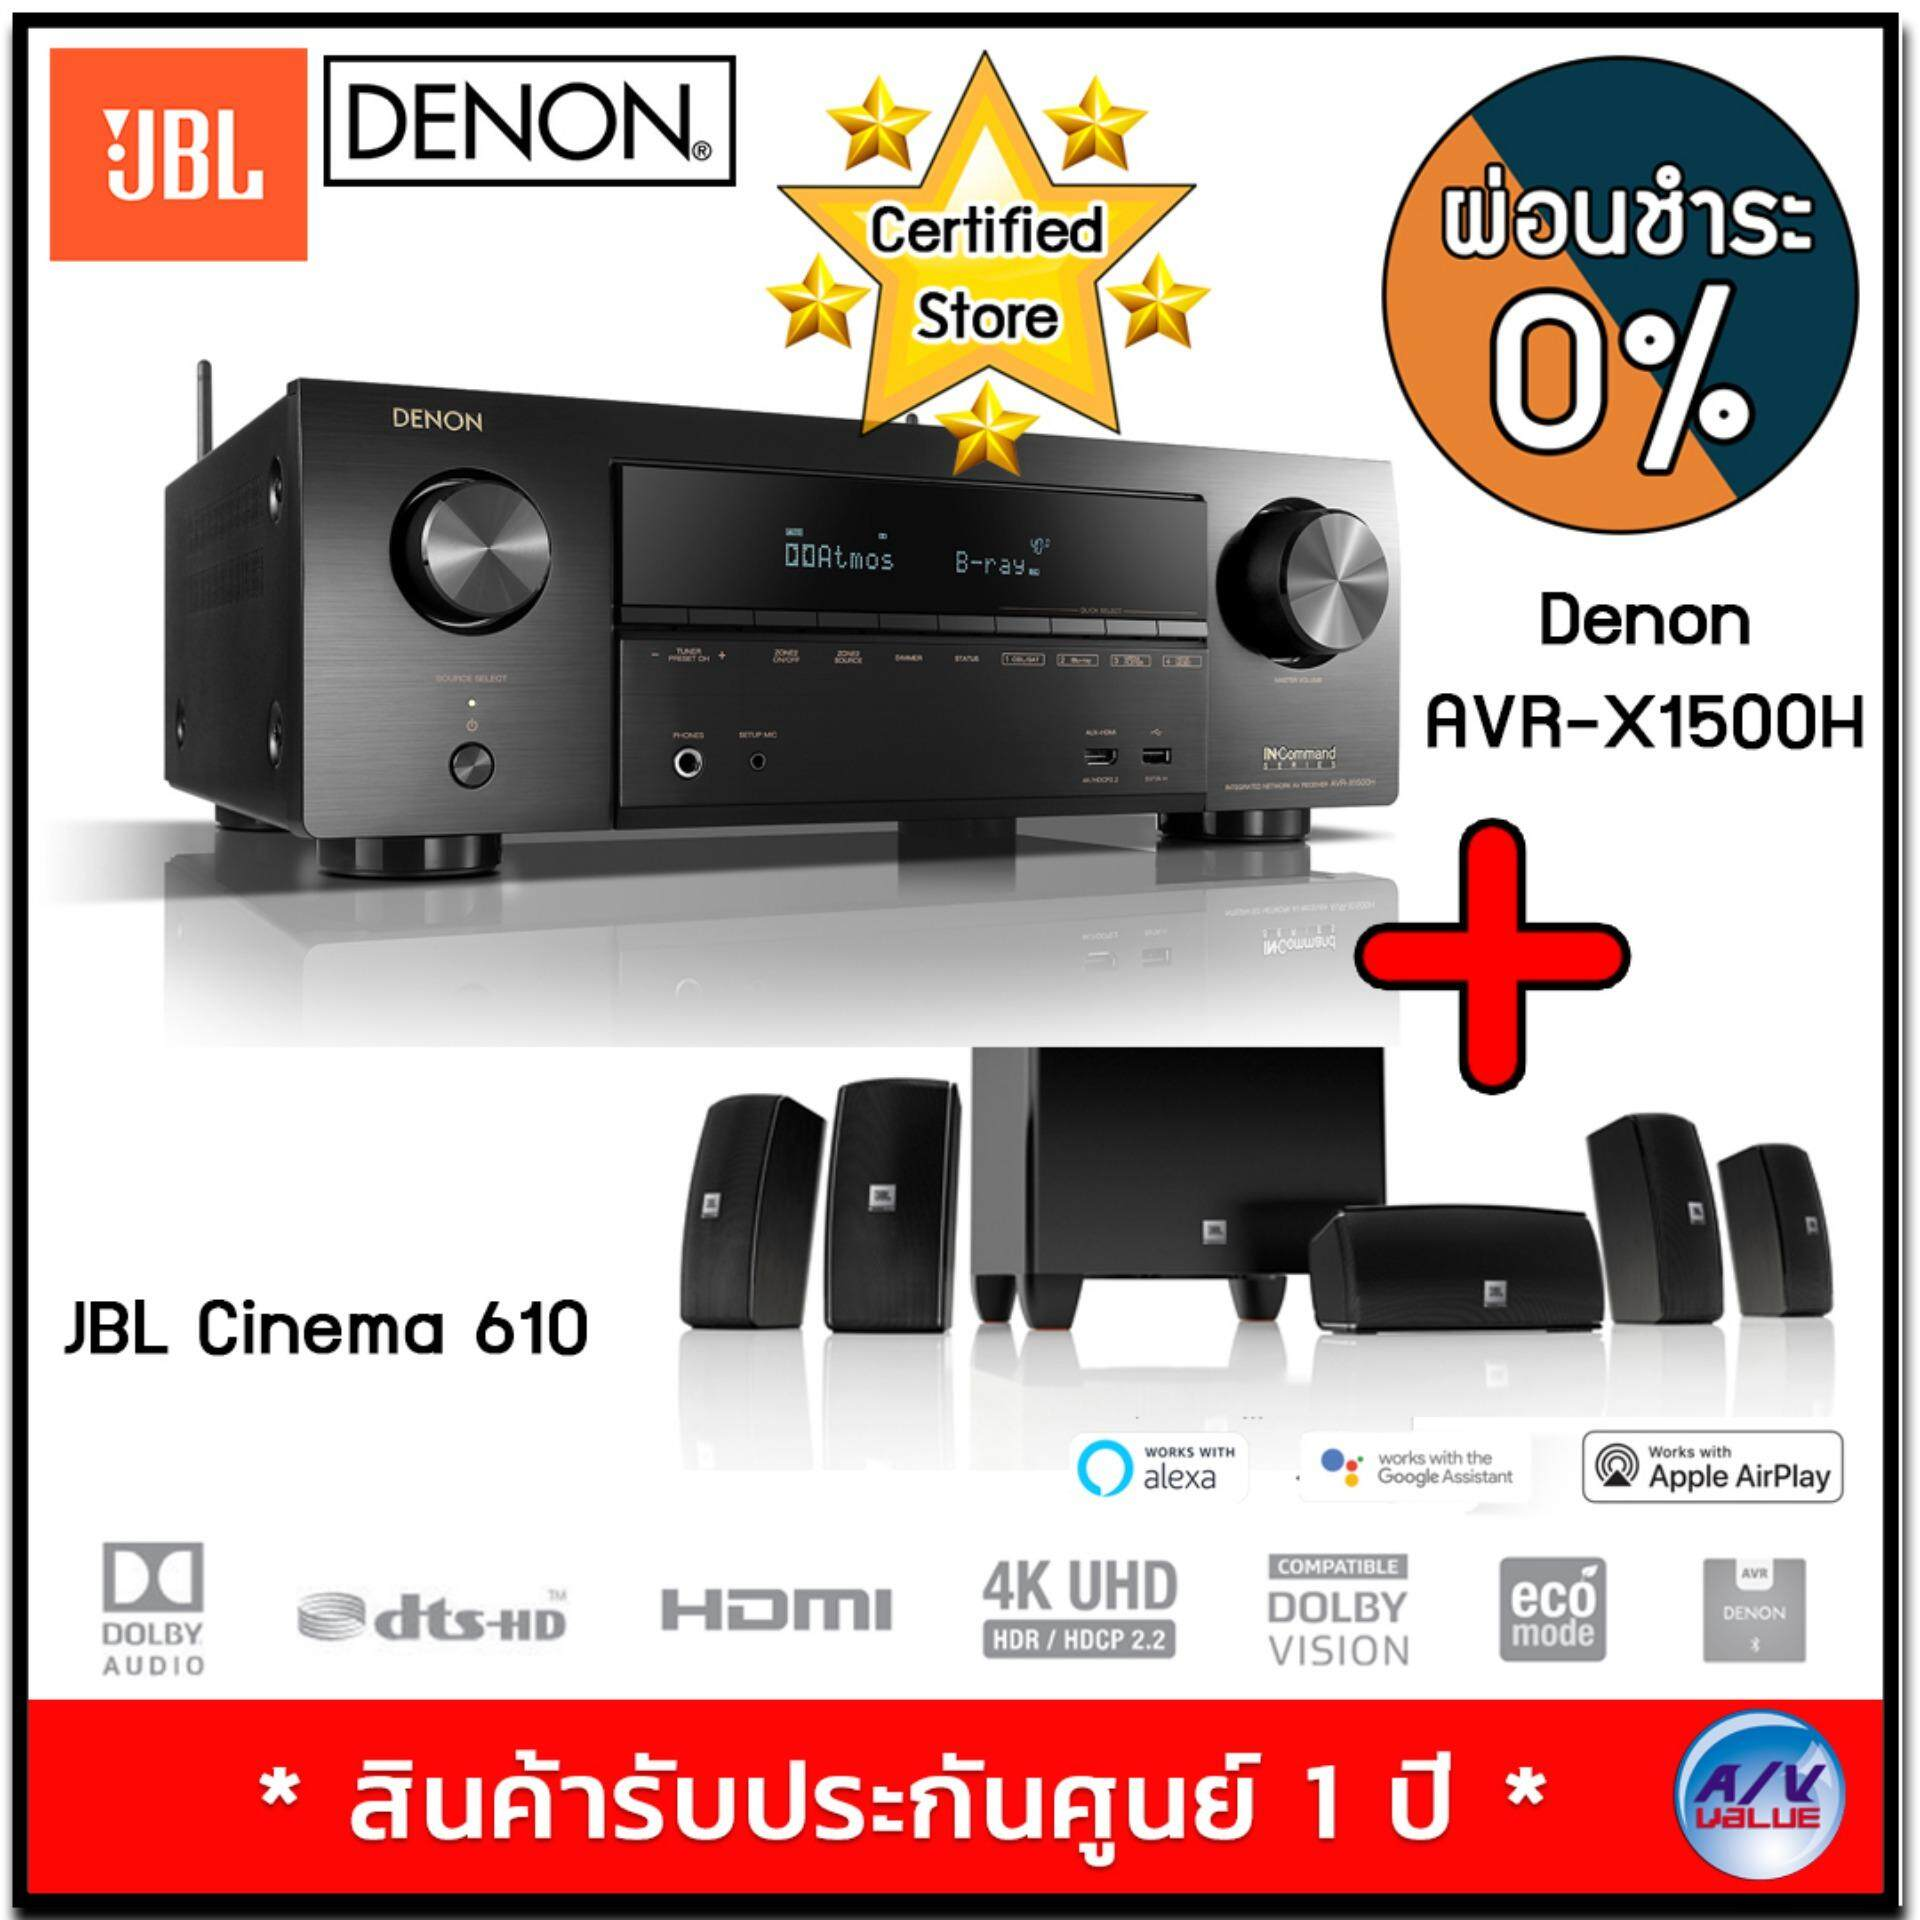 ยี่ห้อไหนดี  ร้อยเอ็ด Denon AVR-X1500H 7.2 CH 80W 4K Ultra HD WiFi/Bluetooth AV Receiver + JBL CINEMA 610  Advanced 5.1 speaker system